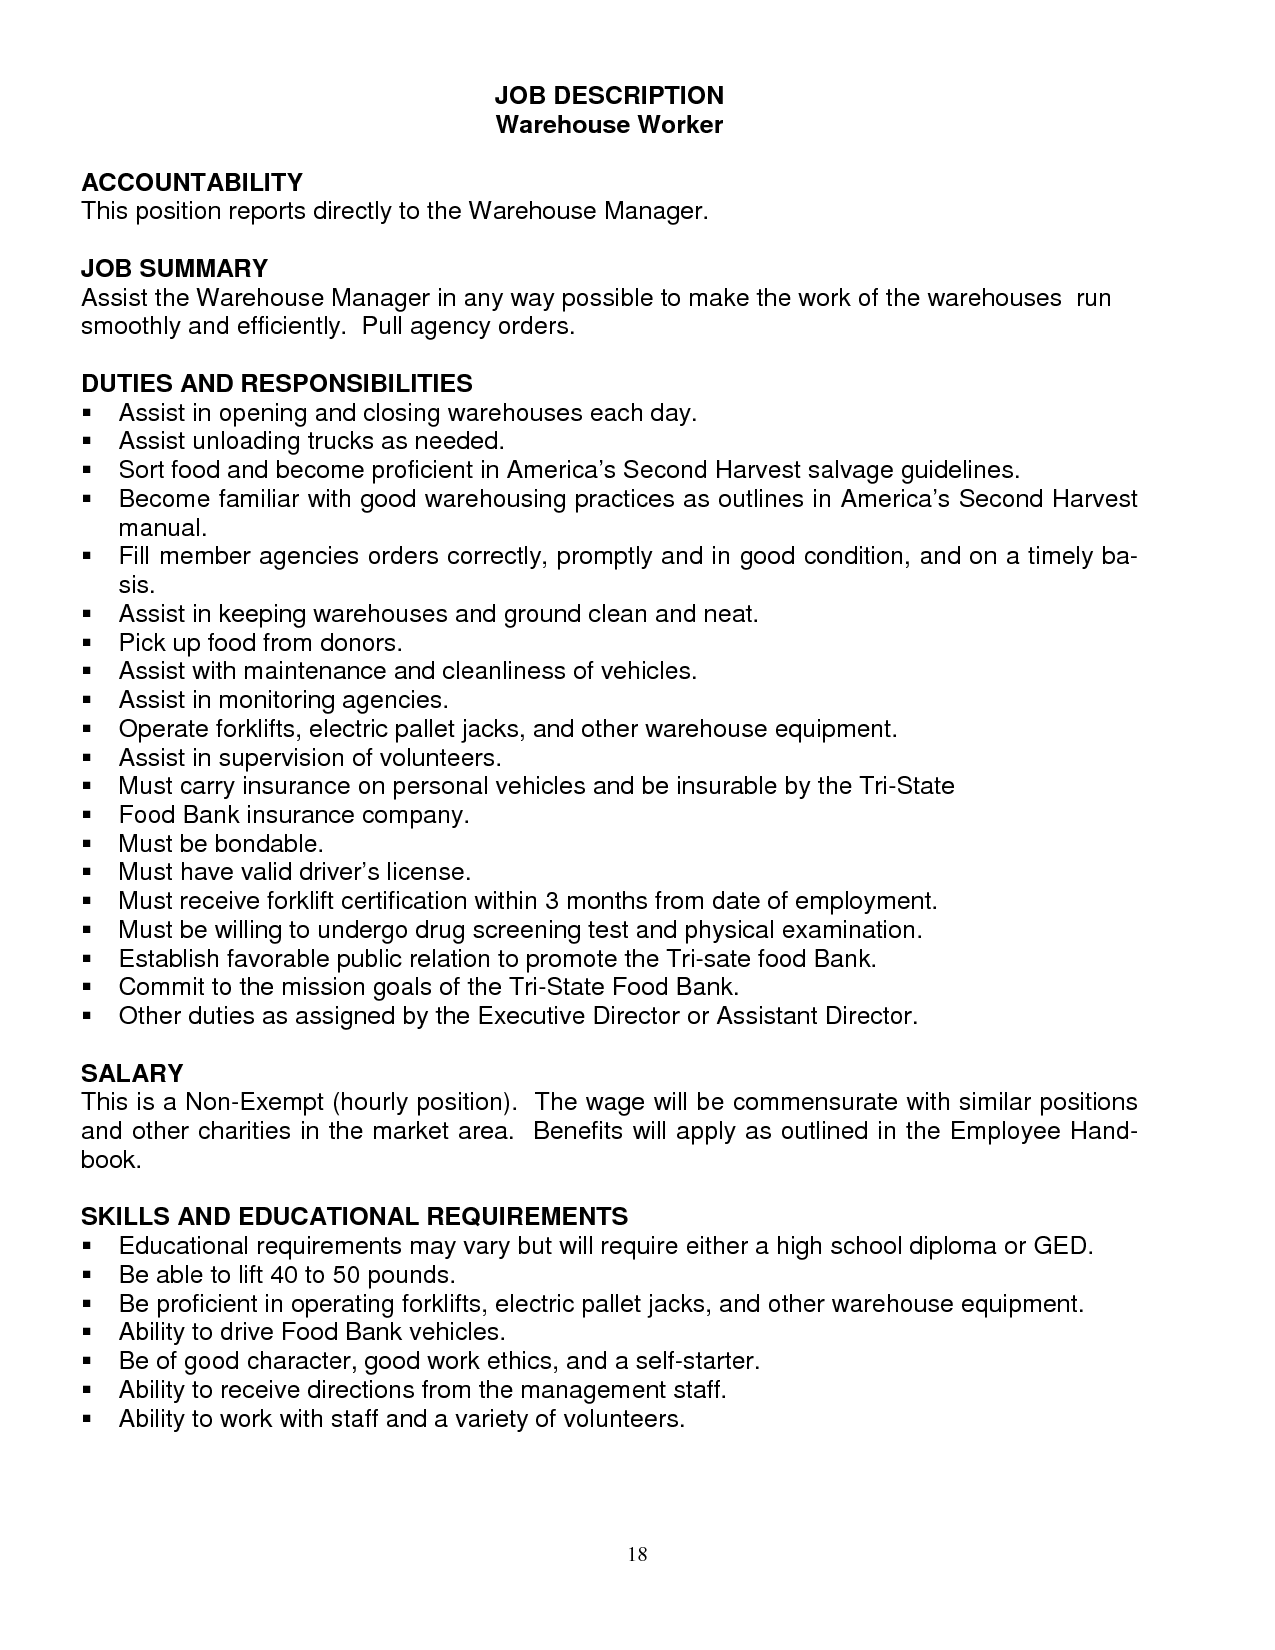 Beautiful Operations Geologist Job Resume Warehouse Worker Job Description Duties And  Responsibilities In Warehouse Job Description For Resume